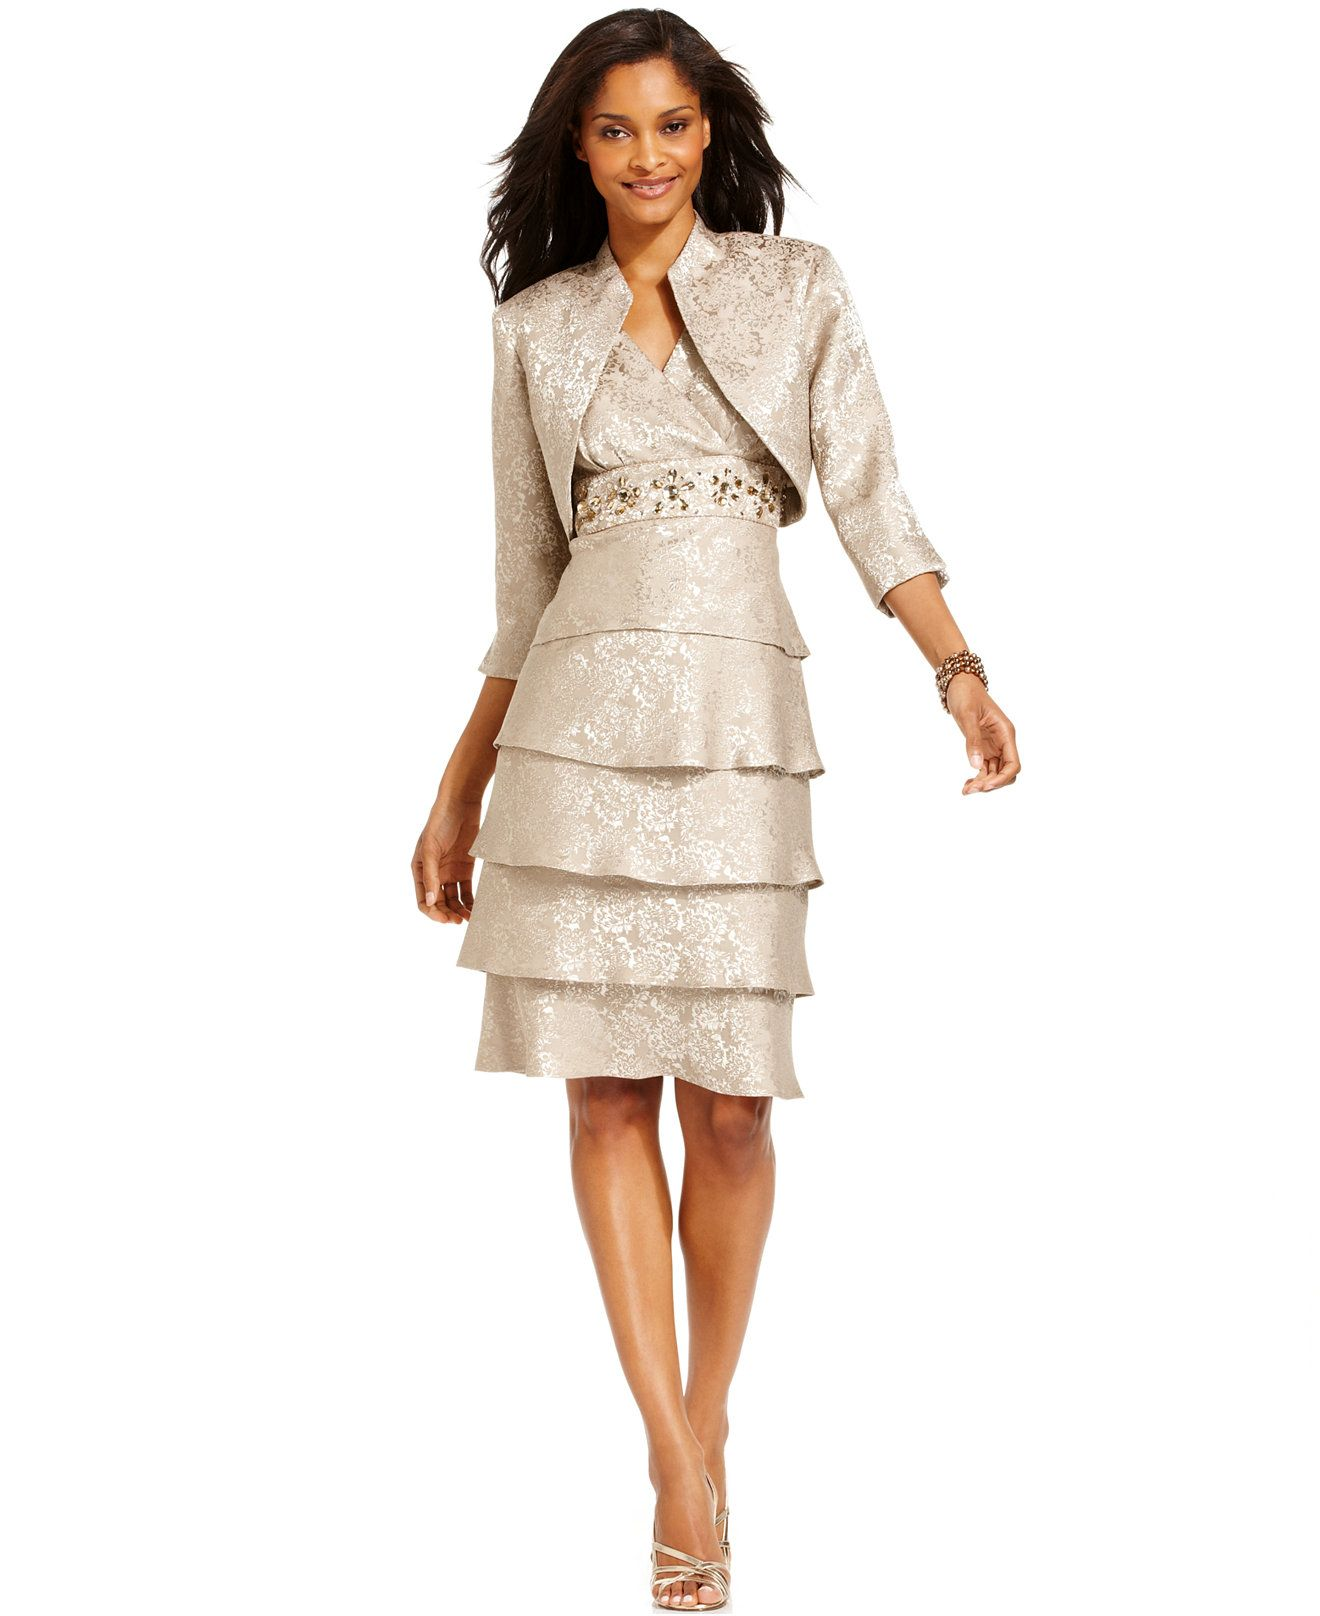 Wedding dresses at macy's  Mother of the Bride Idea  RuM Richards Tiered Embellished Dress